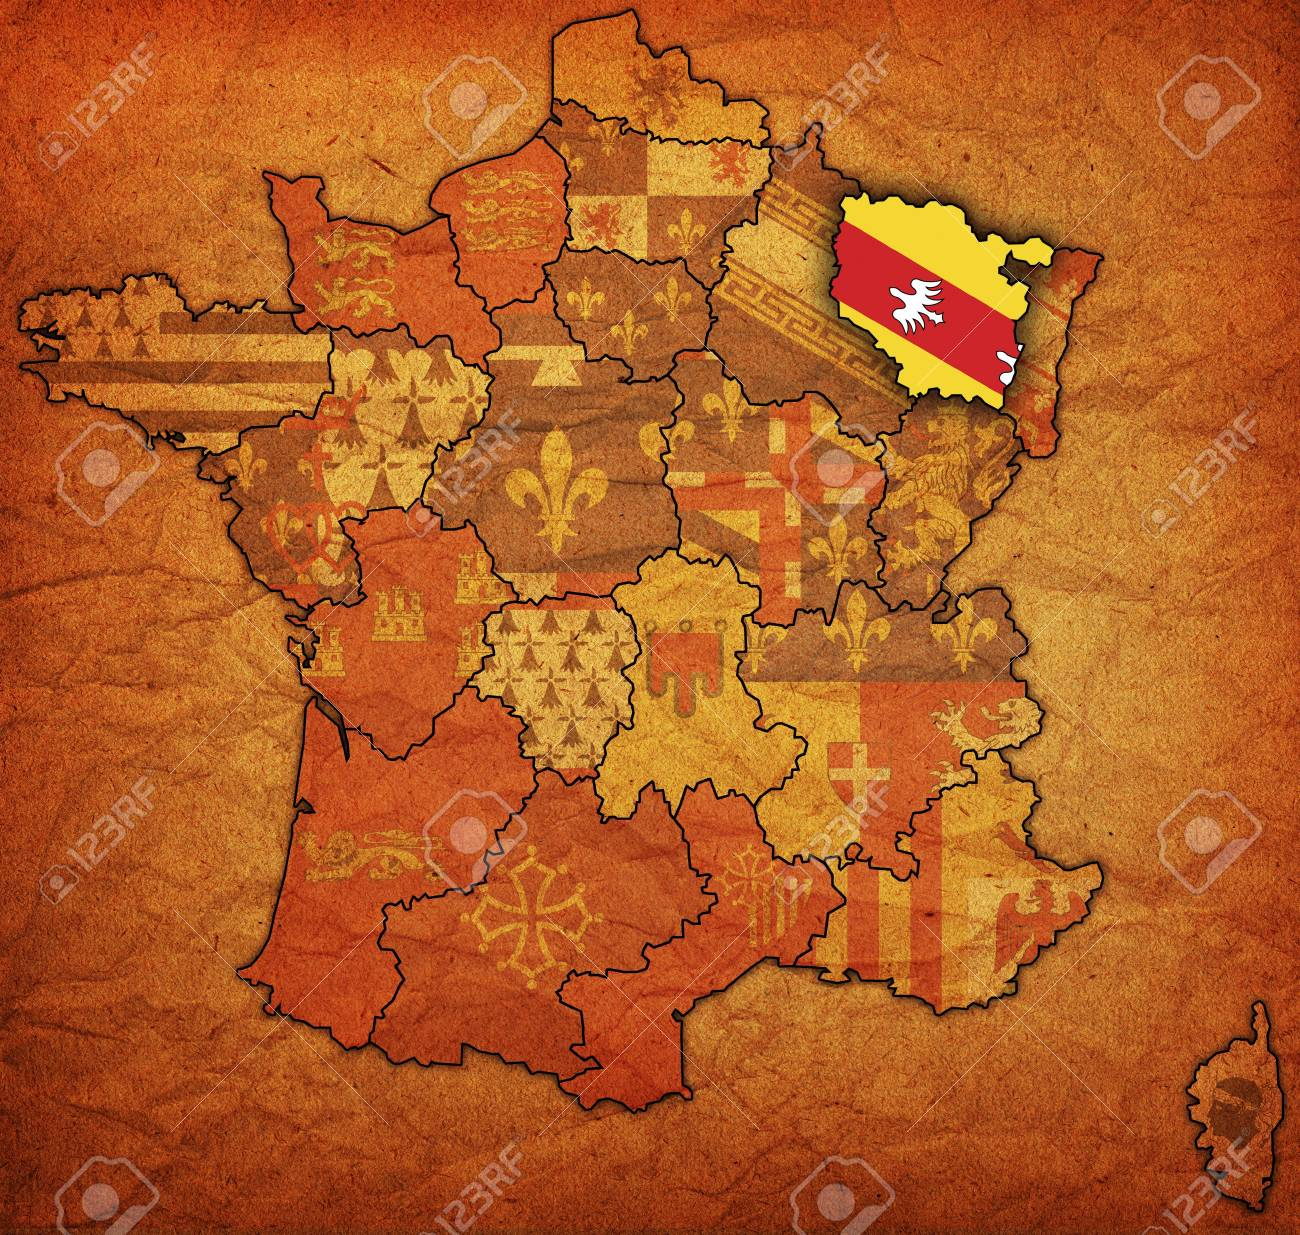 Old Map Of France.Lorraine On Old Map Of France With Flags Of Administrative Divisions